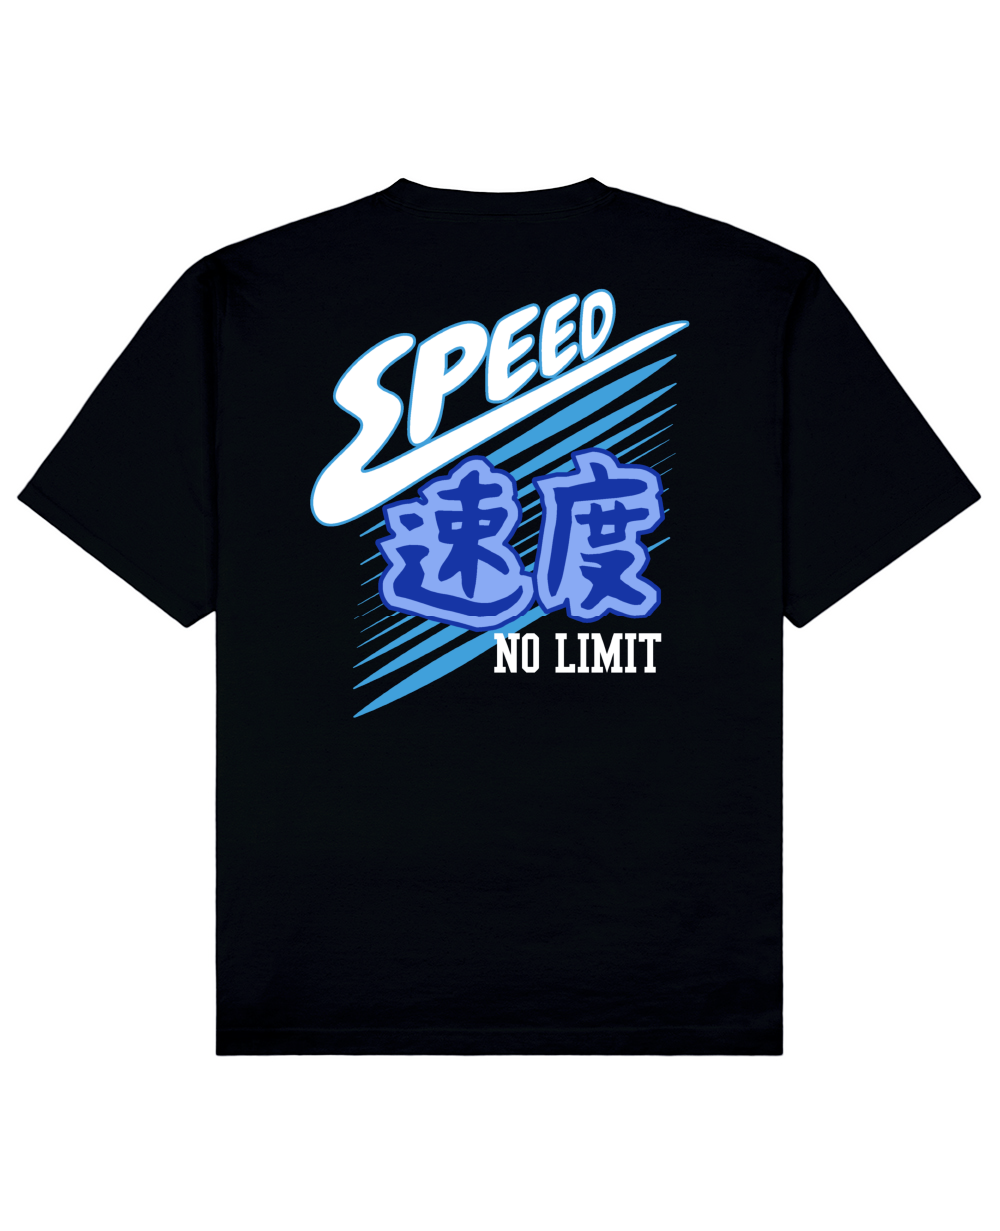 Speed No Limit Print T-shirt in Black - T-Shirts - MIDNIGHT RATS - BRANMA